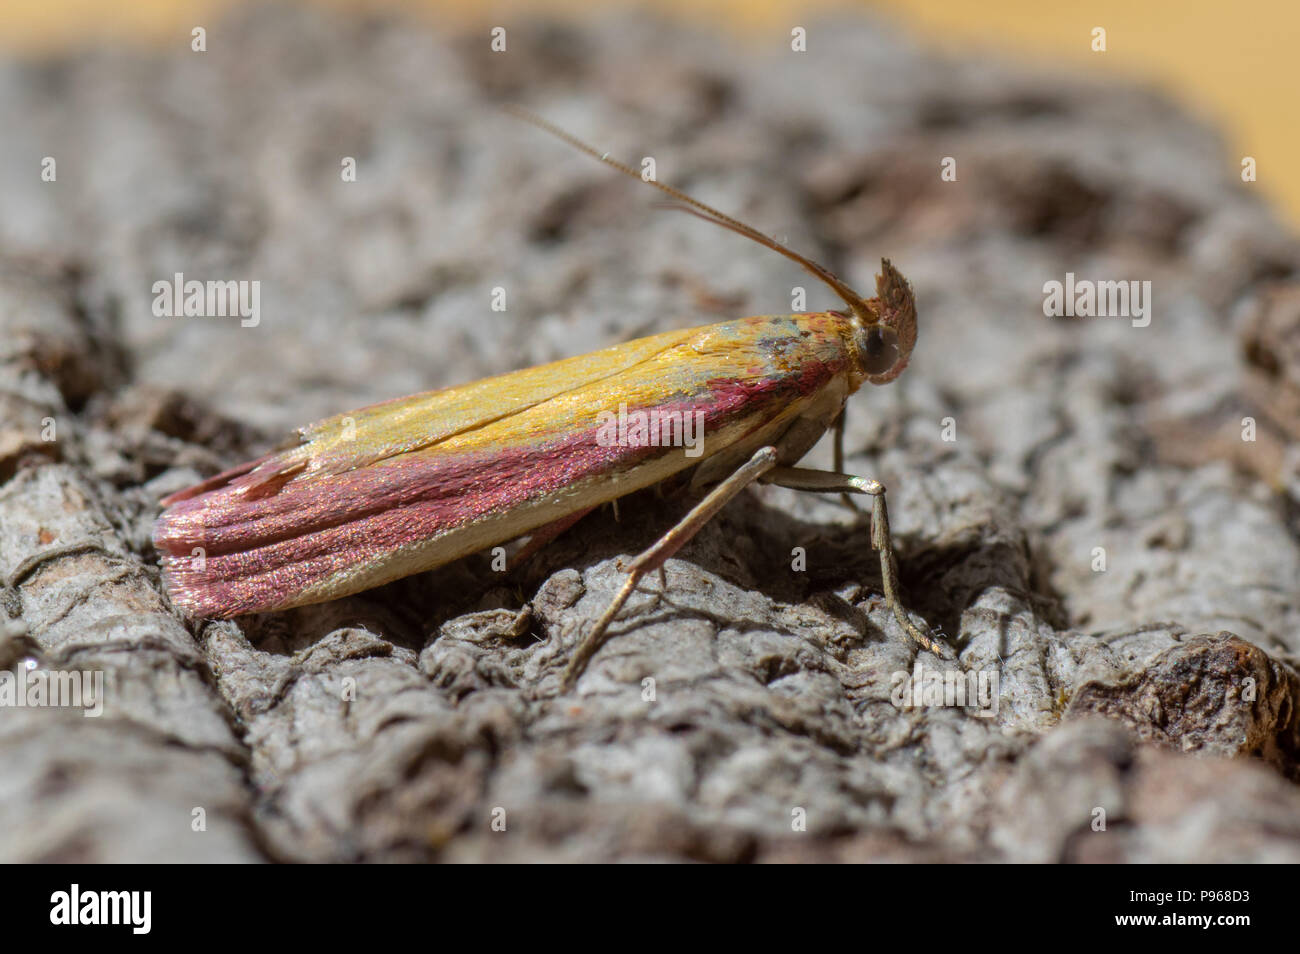 Oncocera semirubella micro moth. Insect in the family Pyralidae at rest, with striking purple and yellow colouration - Stock Image